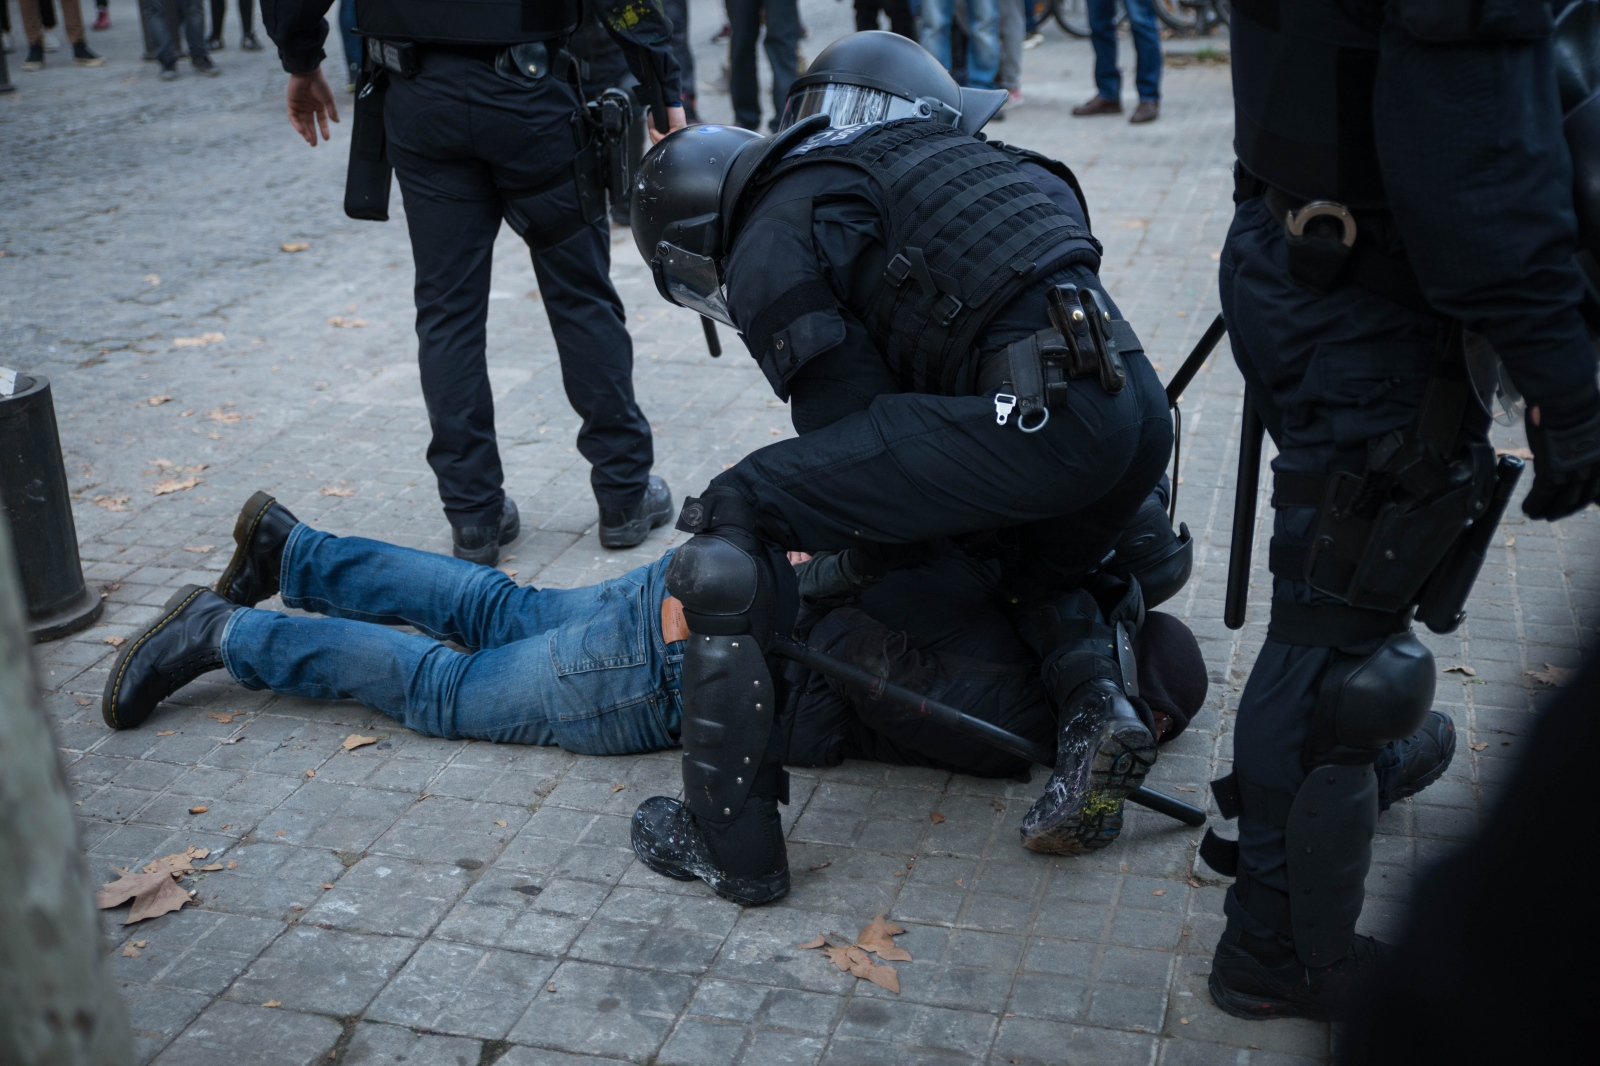 Police arrest a protester during clashes in central Barcelona. The Spanish cabinet meeting that usually takes place in Madrid drew heavy protests from Catalan separatists. It was protected by around 10.000 police forces of the Catalan as well as the Spanish national police that clashed on various occasions with protesters. According to the newspaper El País, at least 13 people were arrested. Barcelona, December 21, 2018.